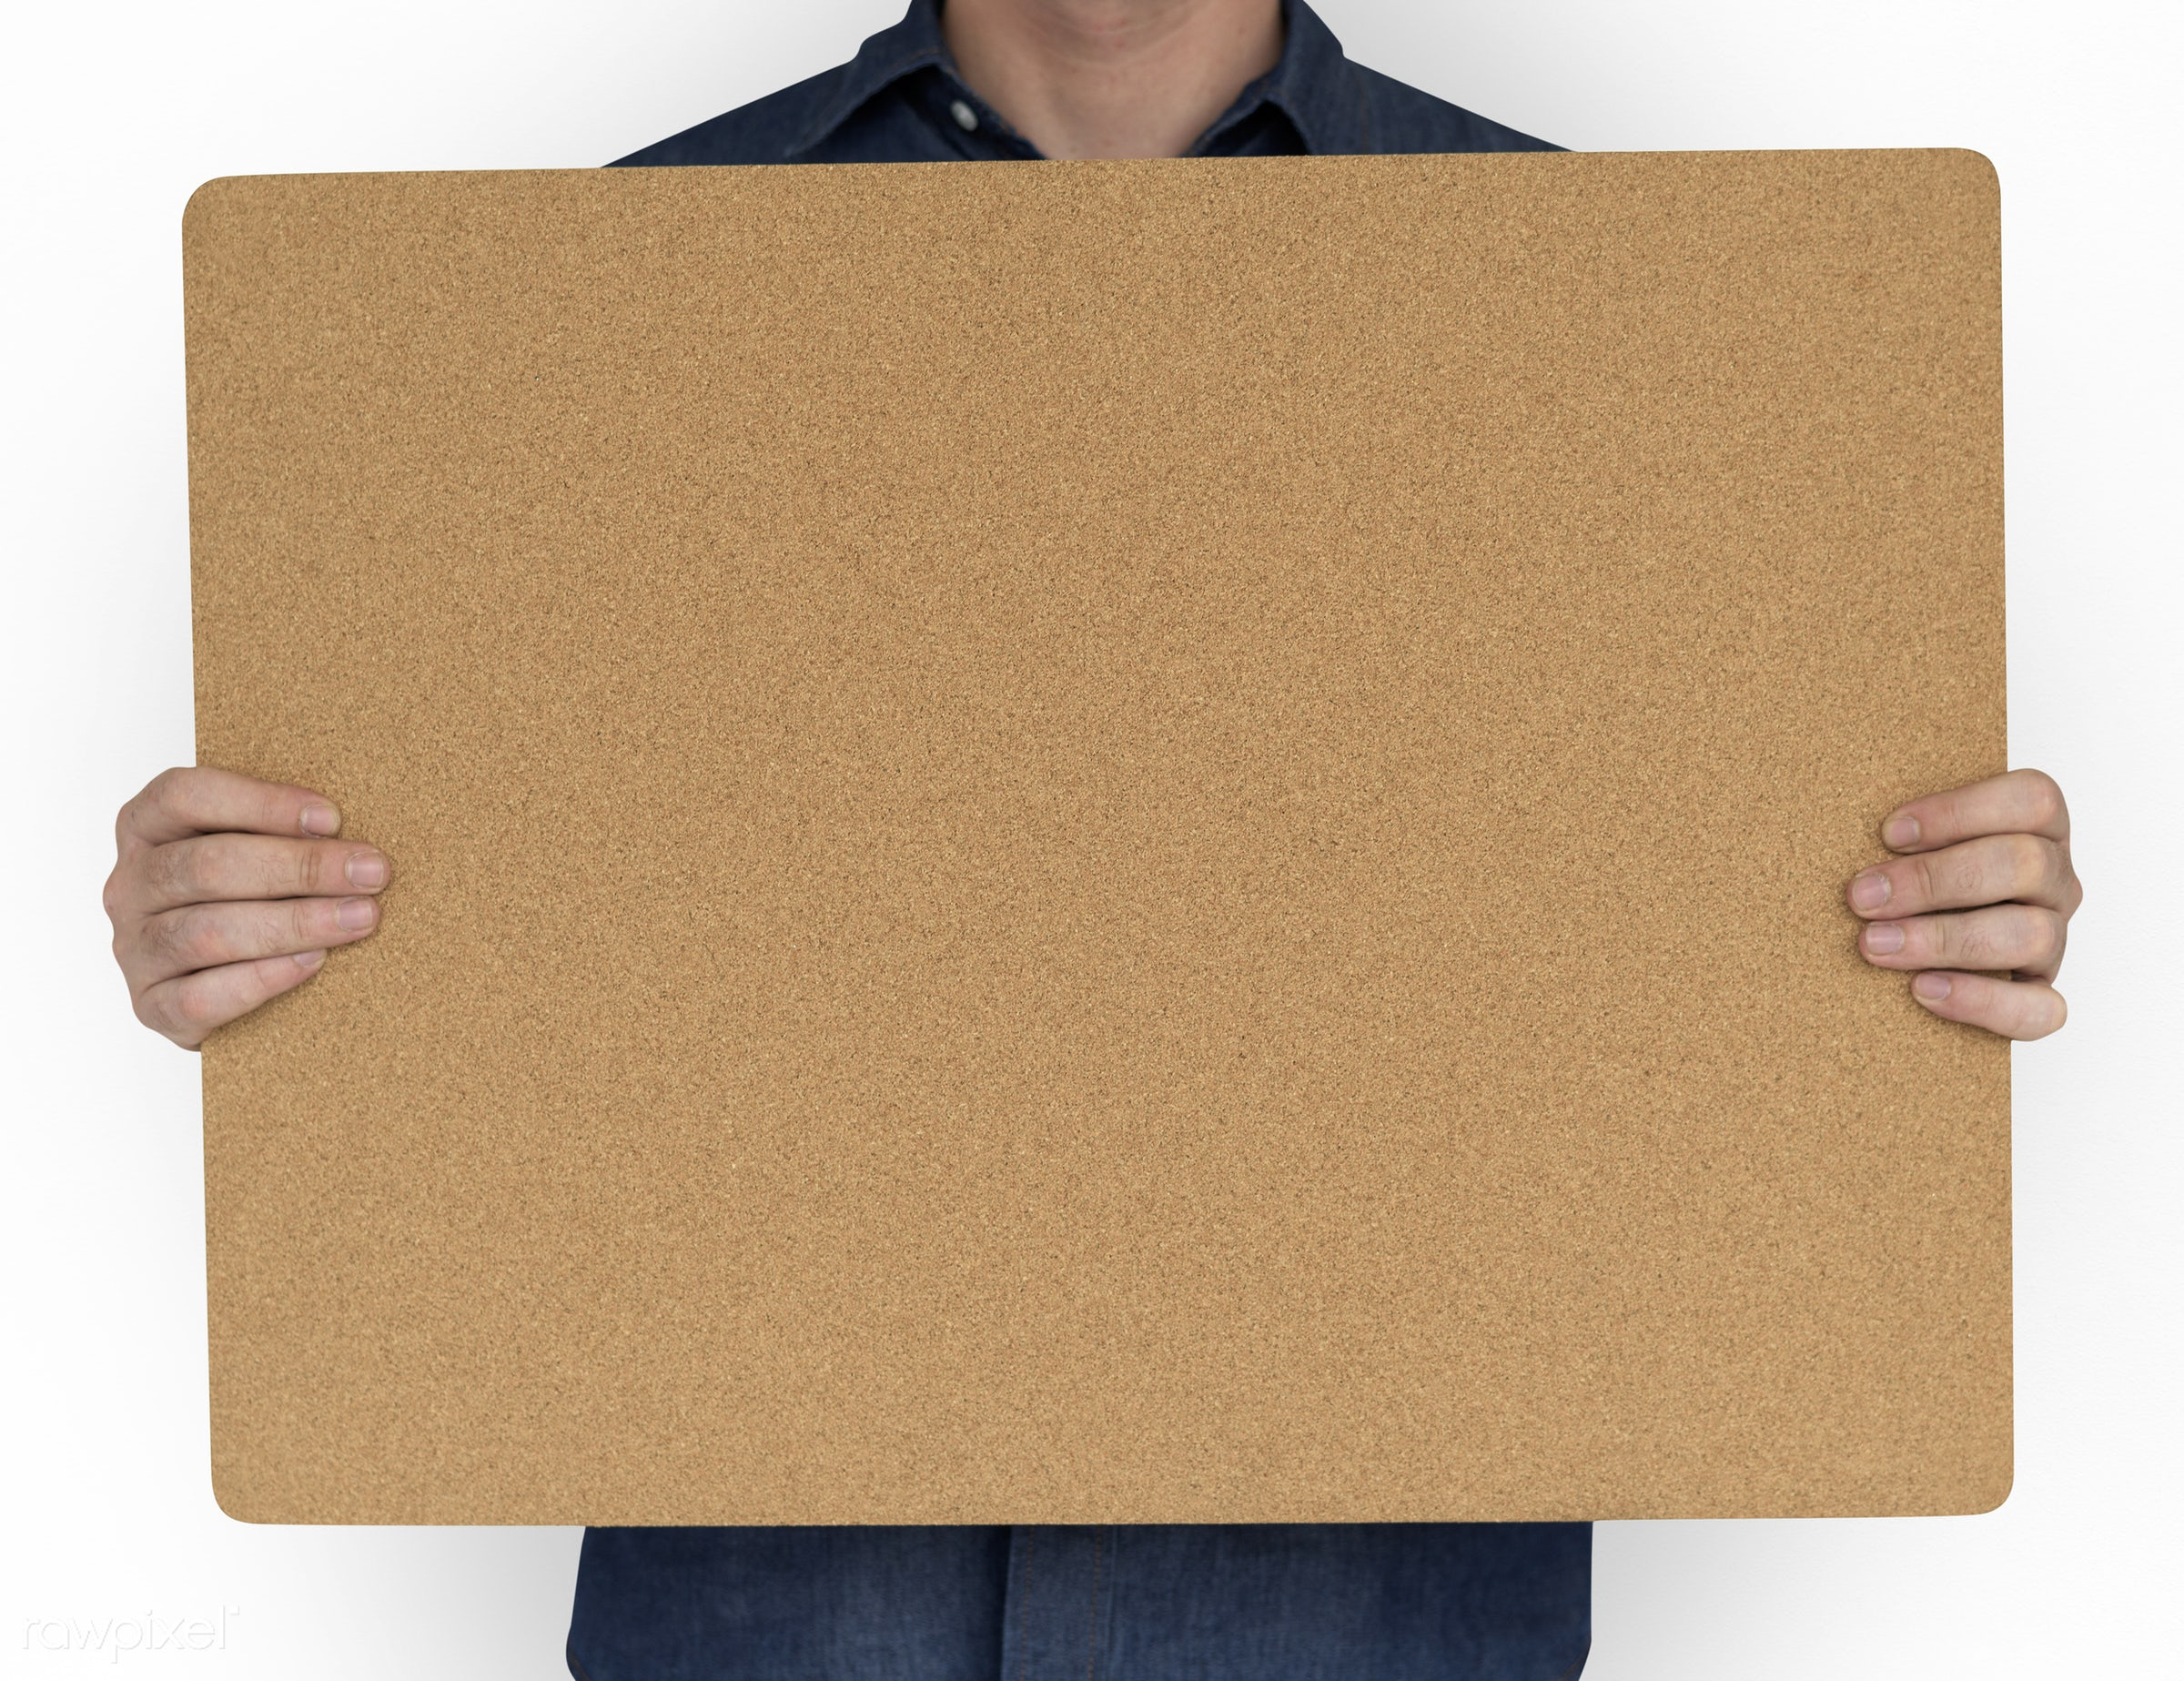 studio, copy space, person, cork, bulletin board, holding, isolated on white, announce, people, placard, casual, man, banner...